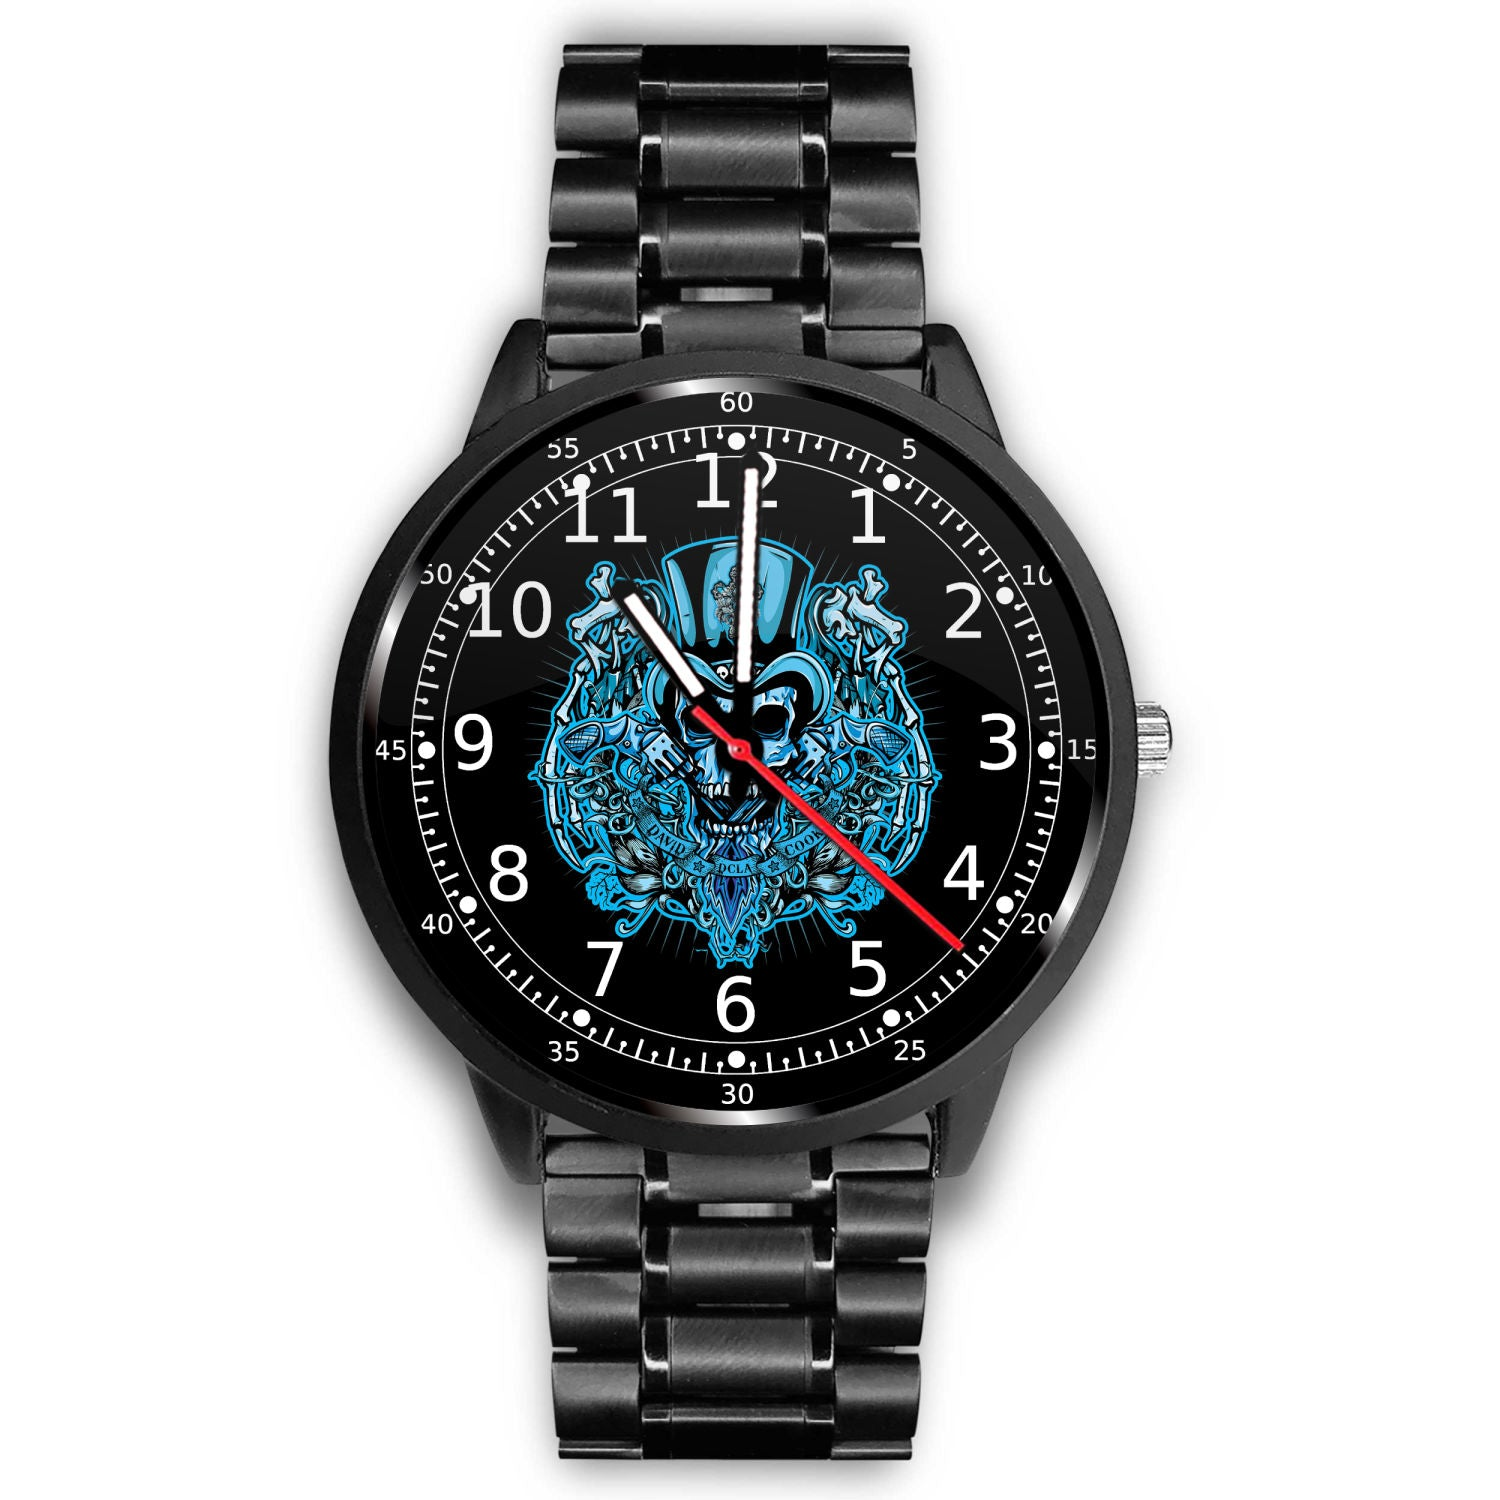 3D Skull Watch - Stainless steel back with leather/ stainless steel band 005 - designfullprint